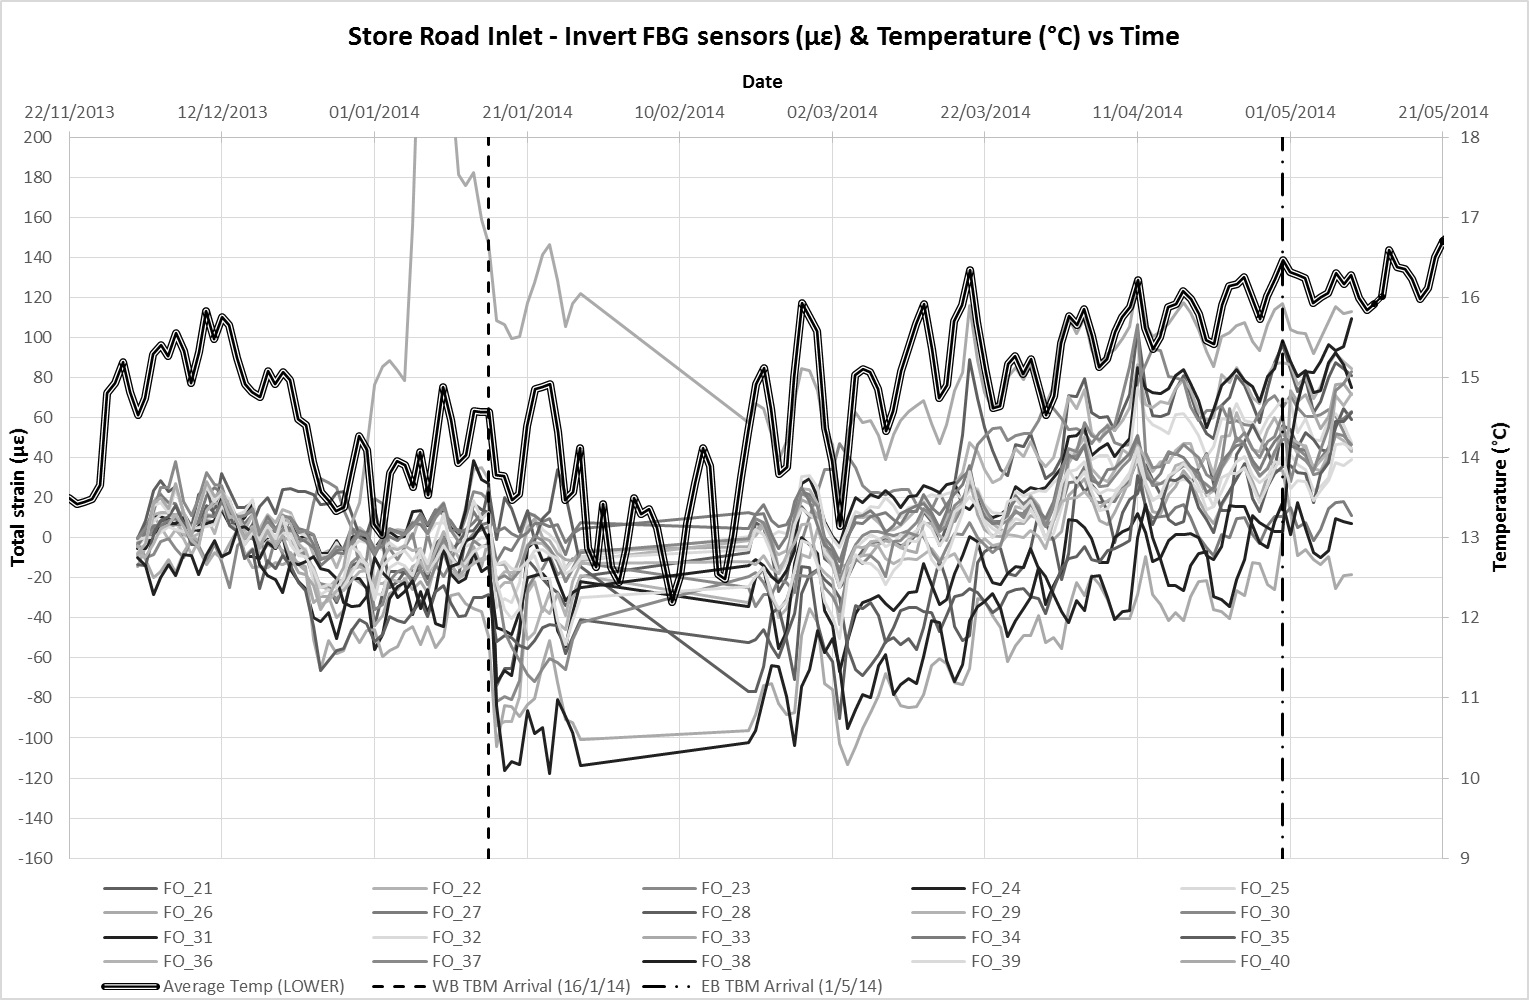 Figure 12b - FBG strain data and average temperature at invert level against time